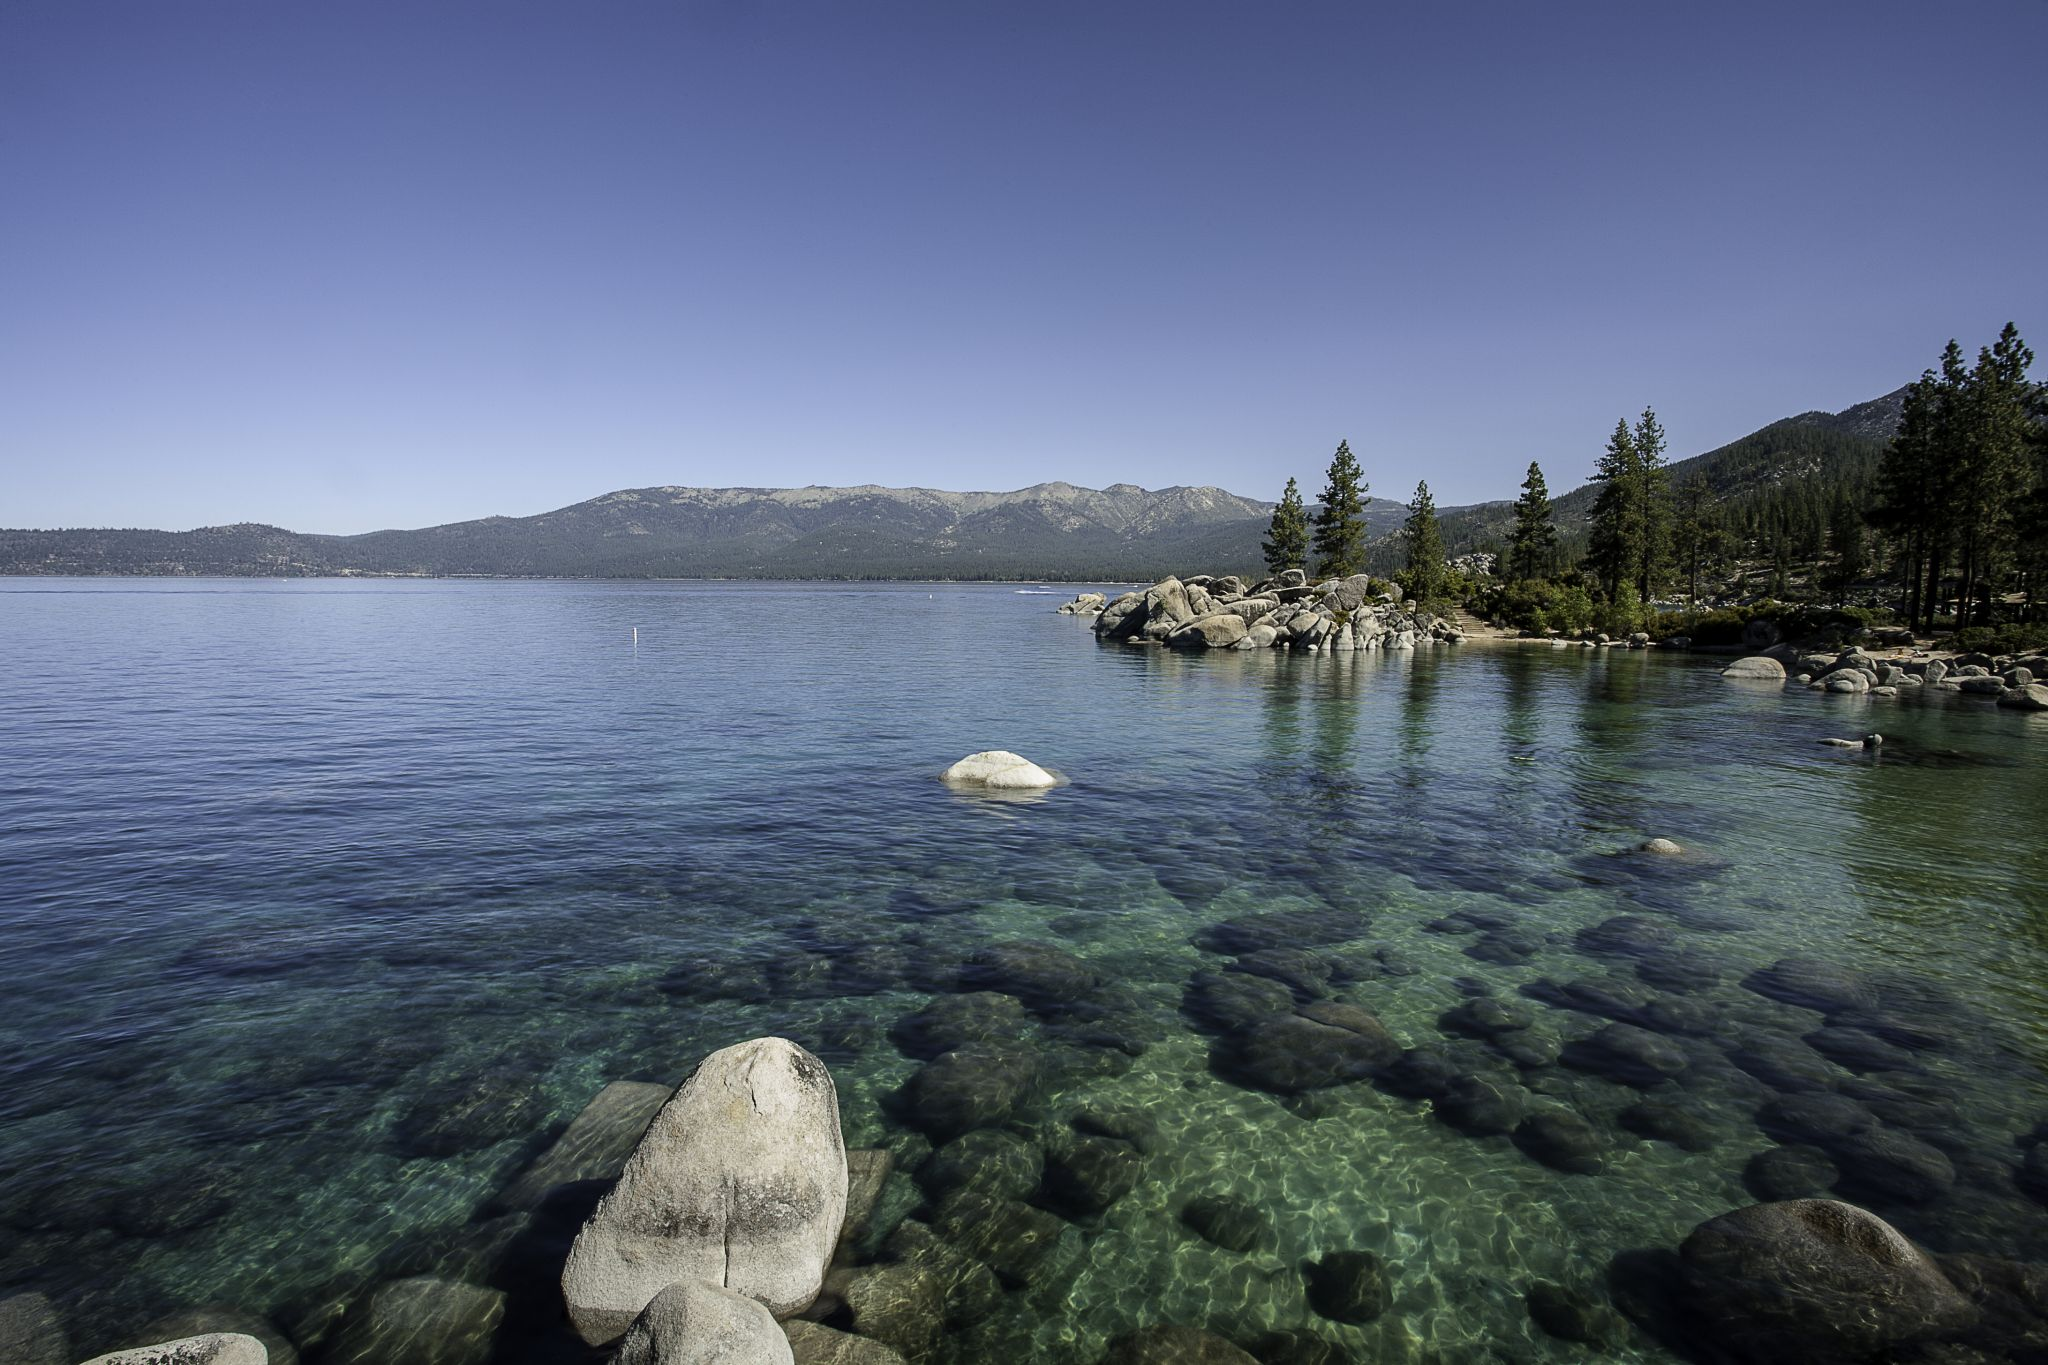 Why Tahoe isn't a national park?